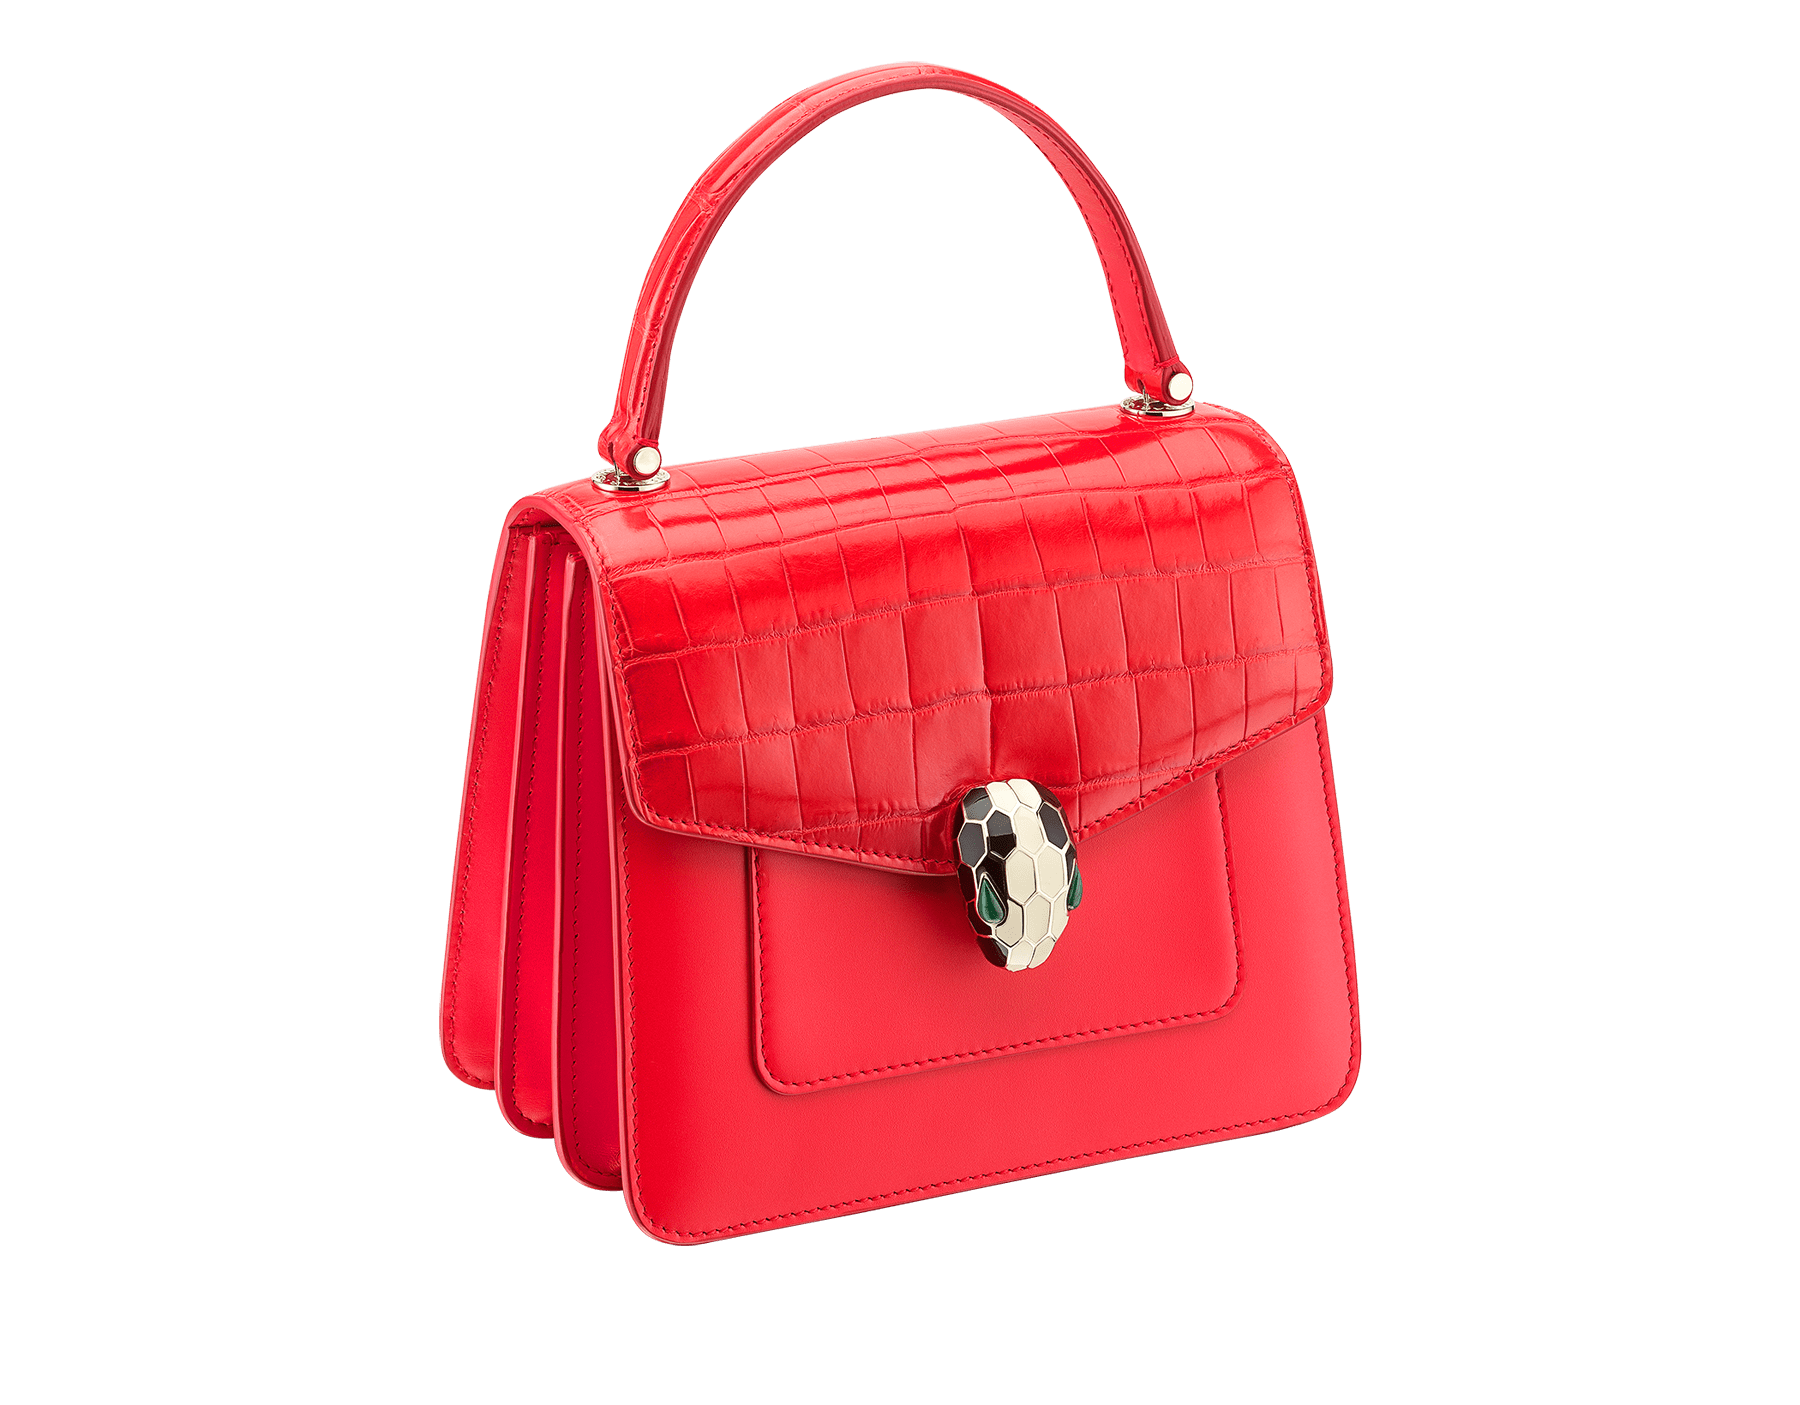 Serpenti Forever crossbody bag in sea star coral shiny croco skin and smooth calf leather. Snakehead closure in light gold plated brass decorated with black and white enamel, and green malachite eyes. 288491 image 2